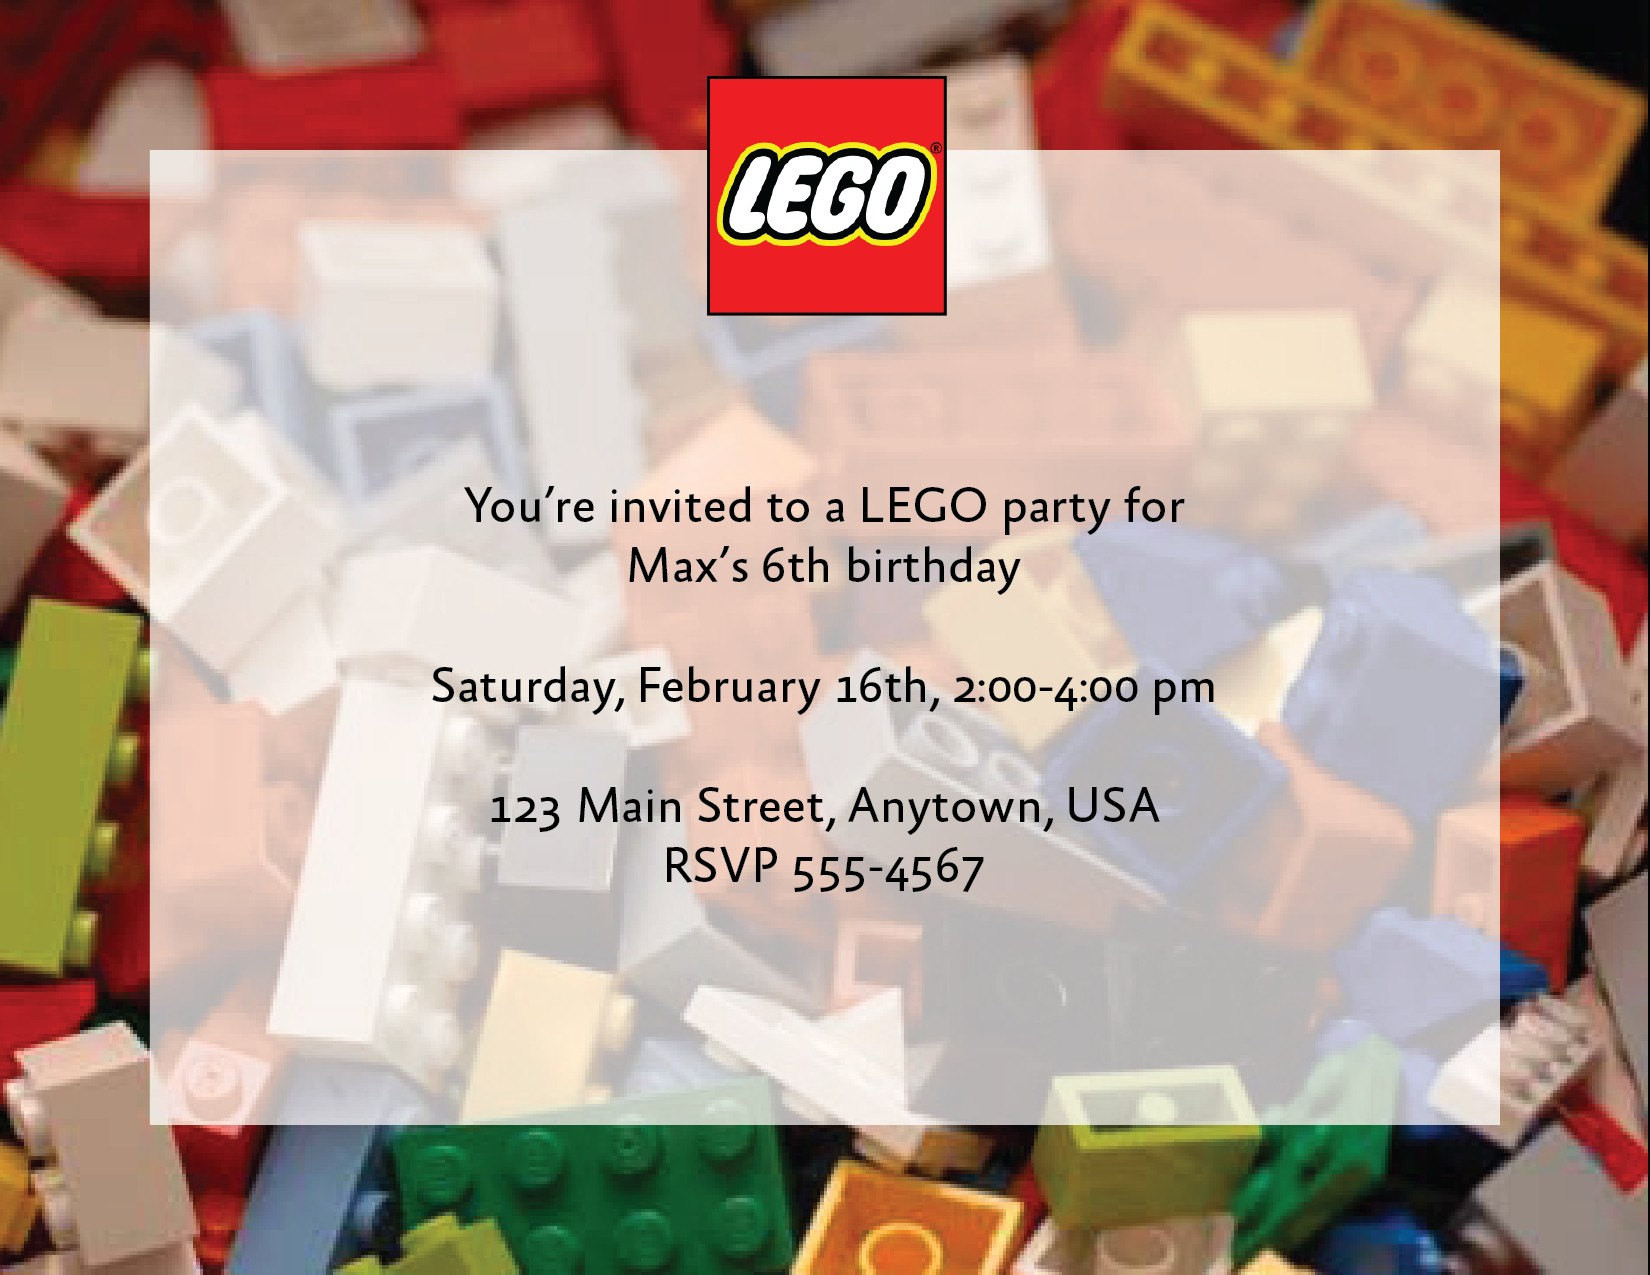 Best ideas about Custom Birthday Party Invitations . Save or Pin Custom Lego Birthday Party Invitations Now.